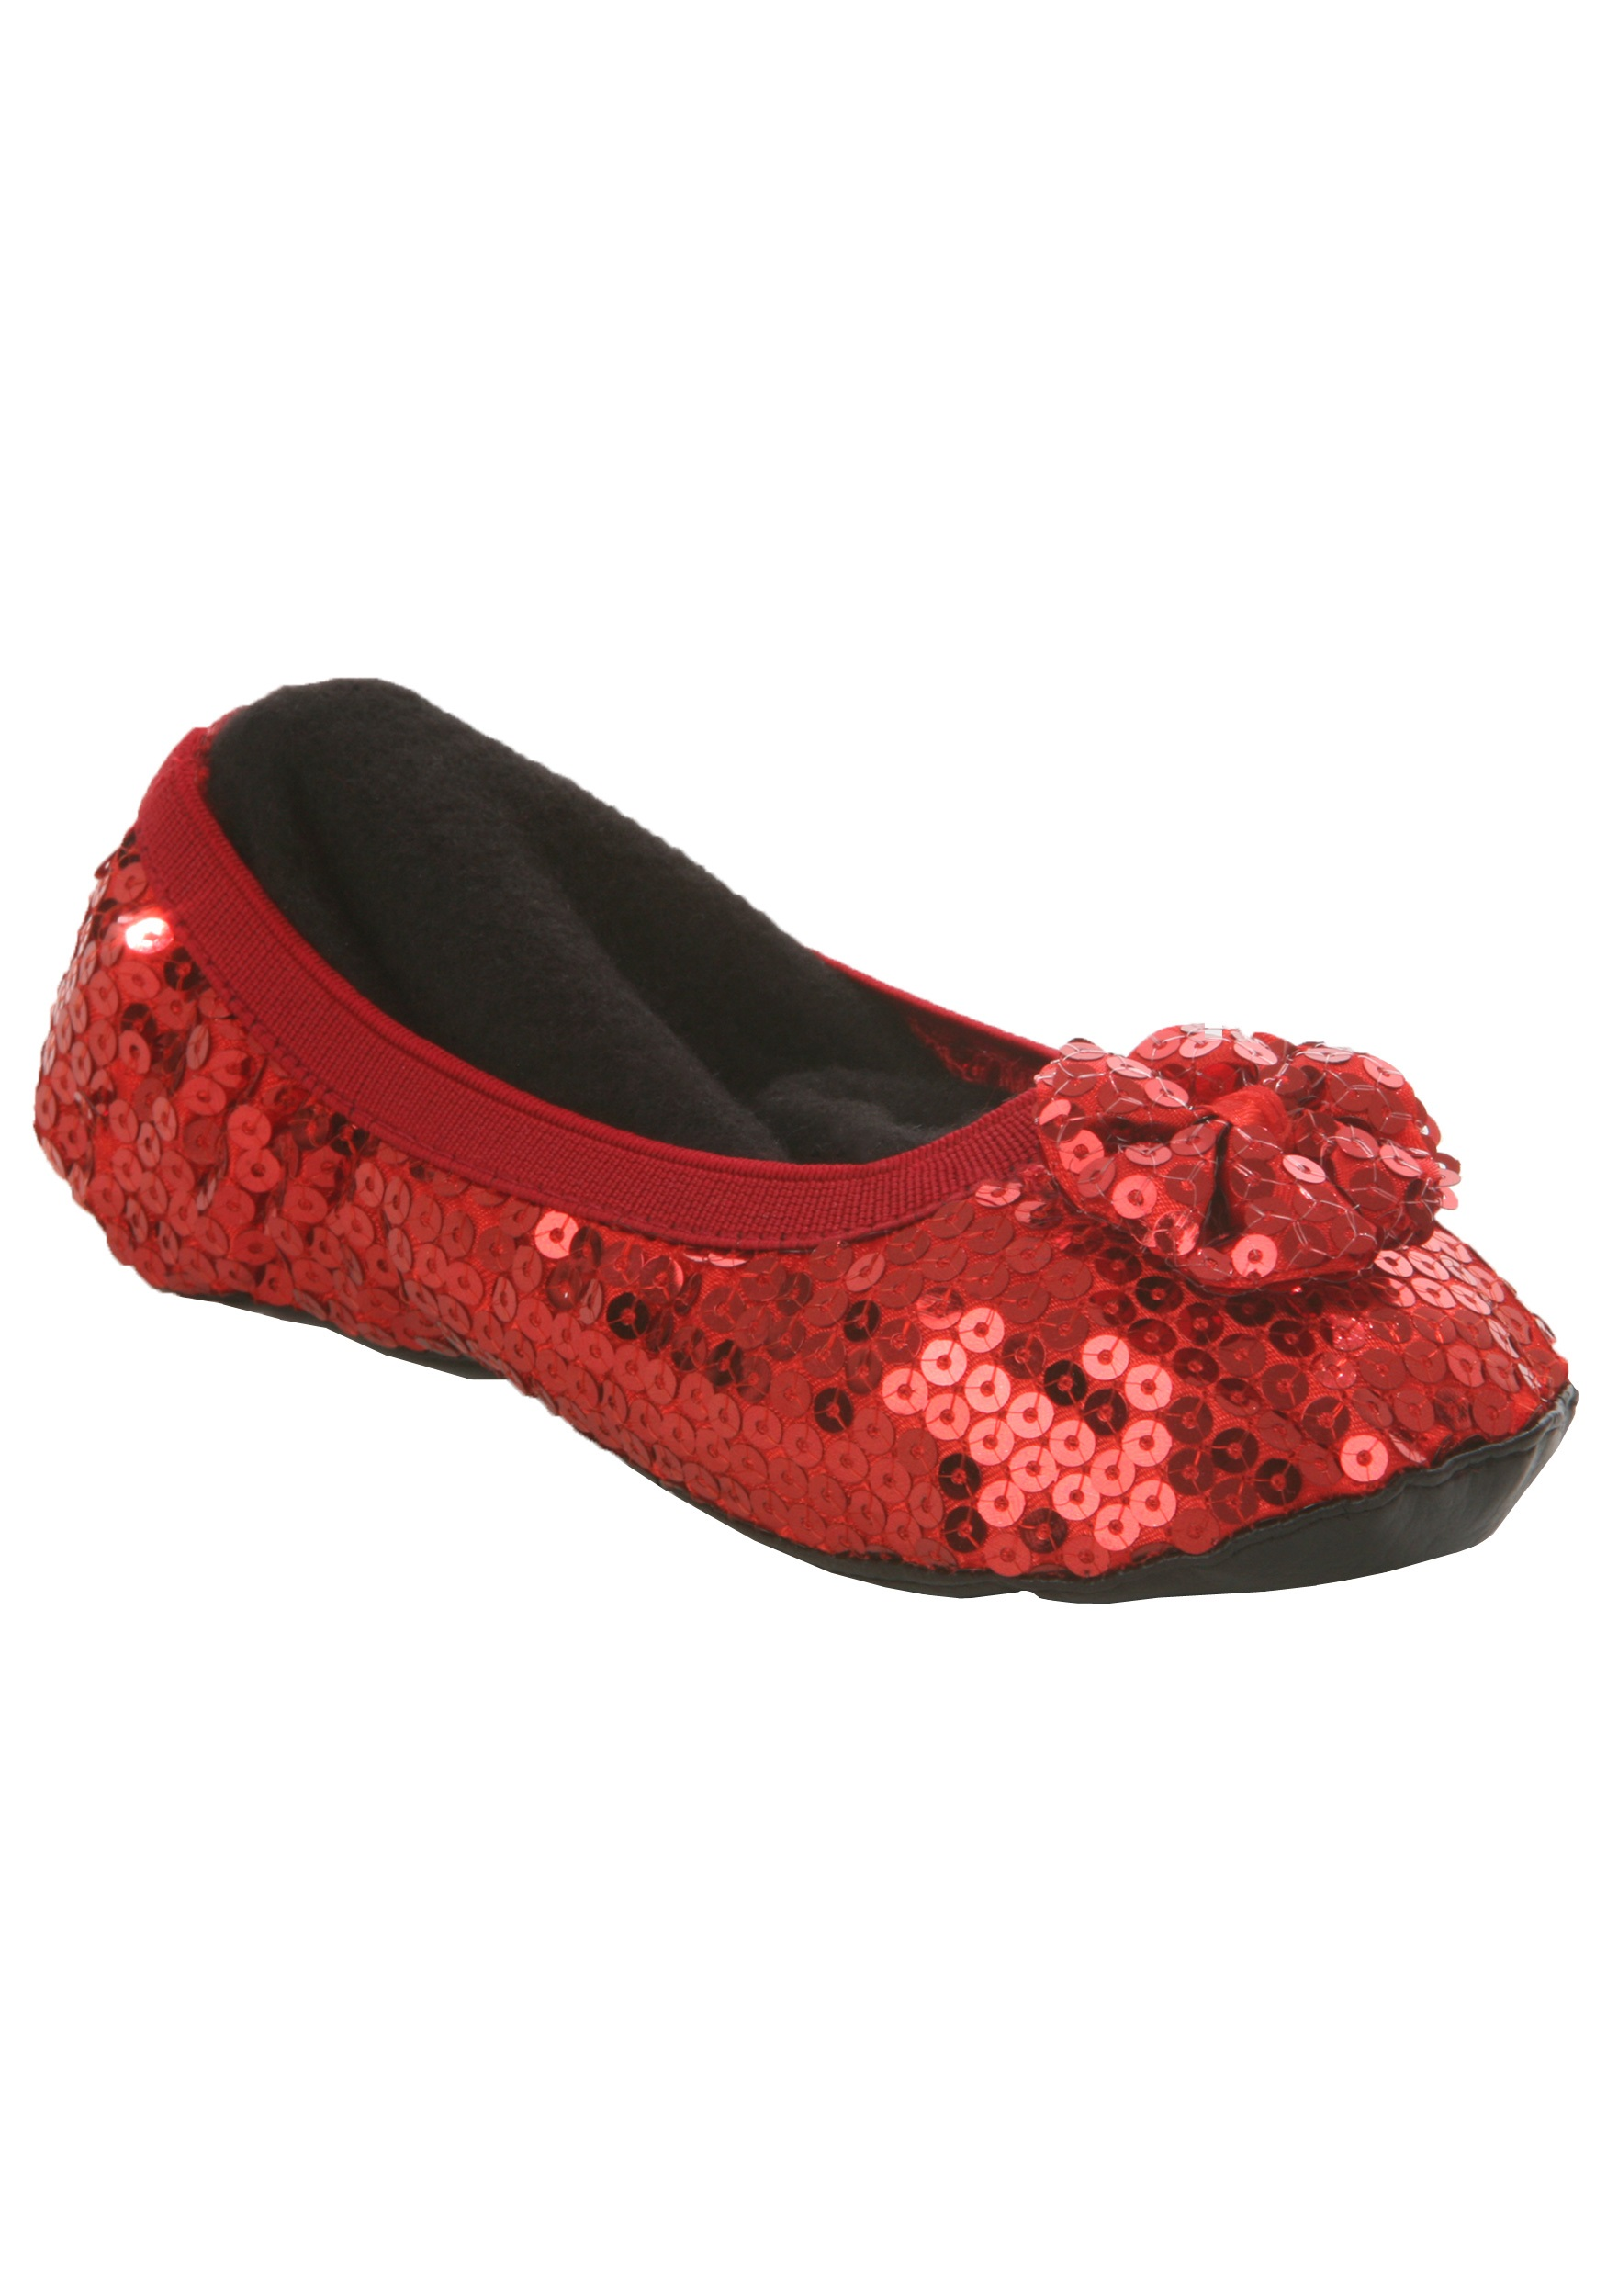 Image 7 : Judy Garland Dorothy Gale screen-worn ruby slippers from The